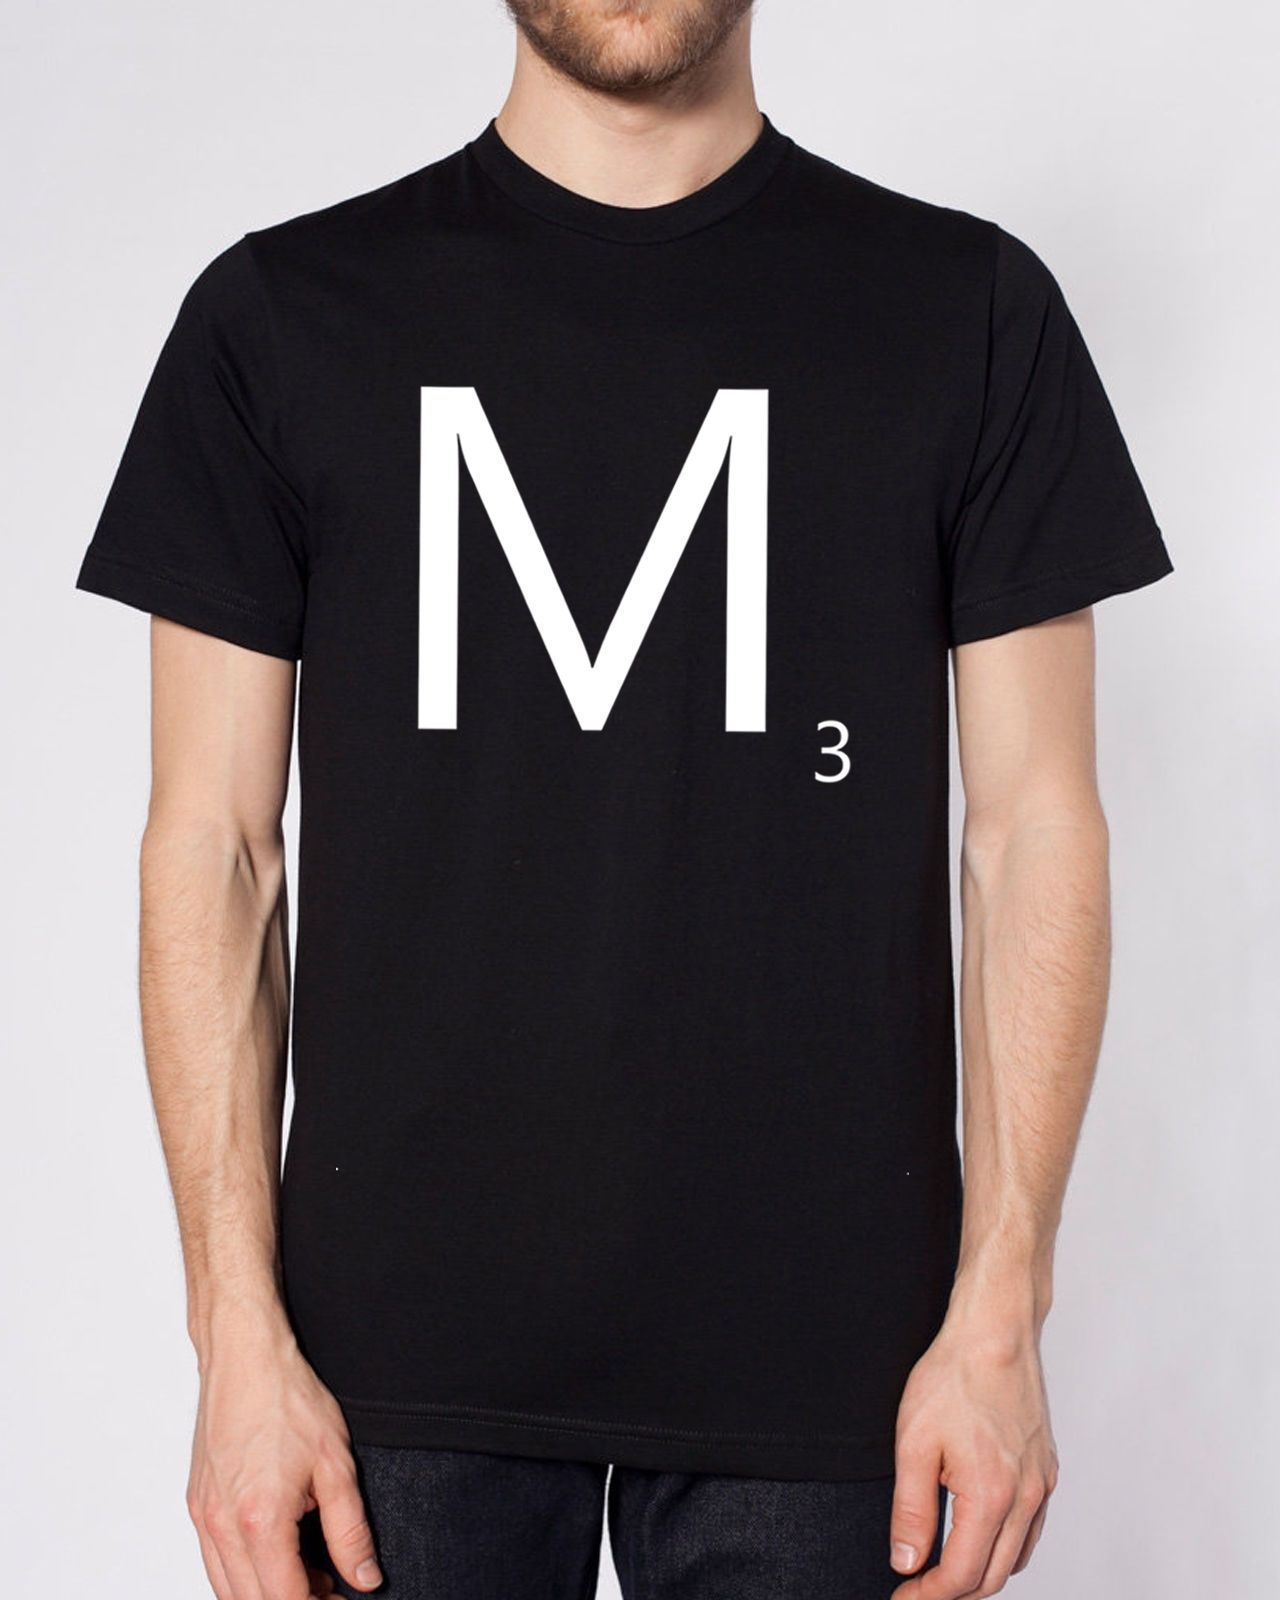 Scrabble Letters M 3 T Shirt Personalized Gift Present Retro Hipster Brand Game